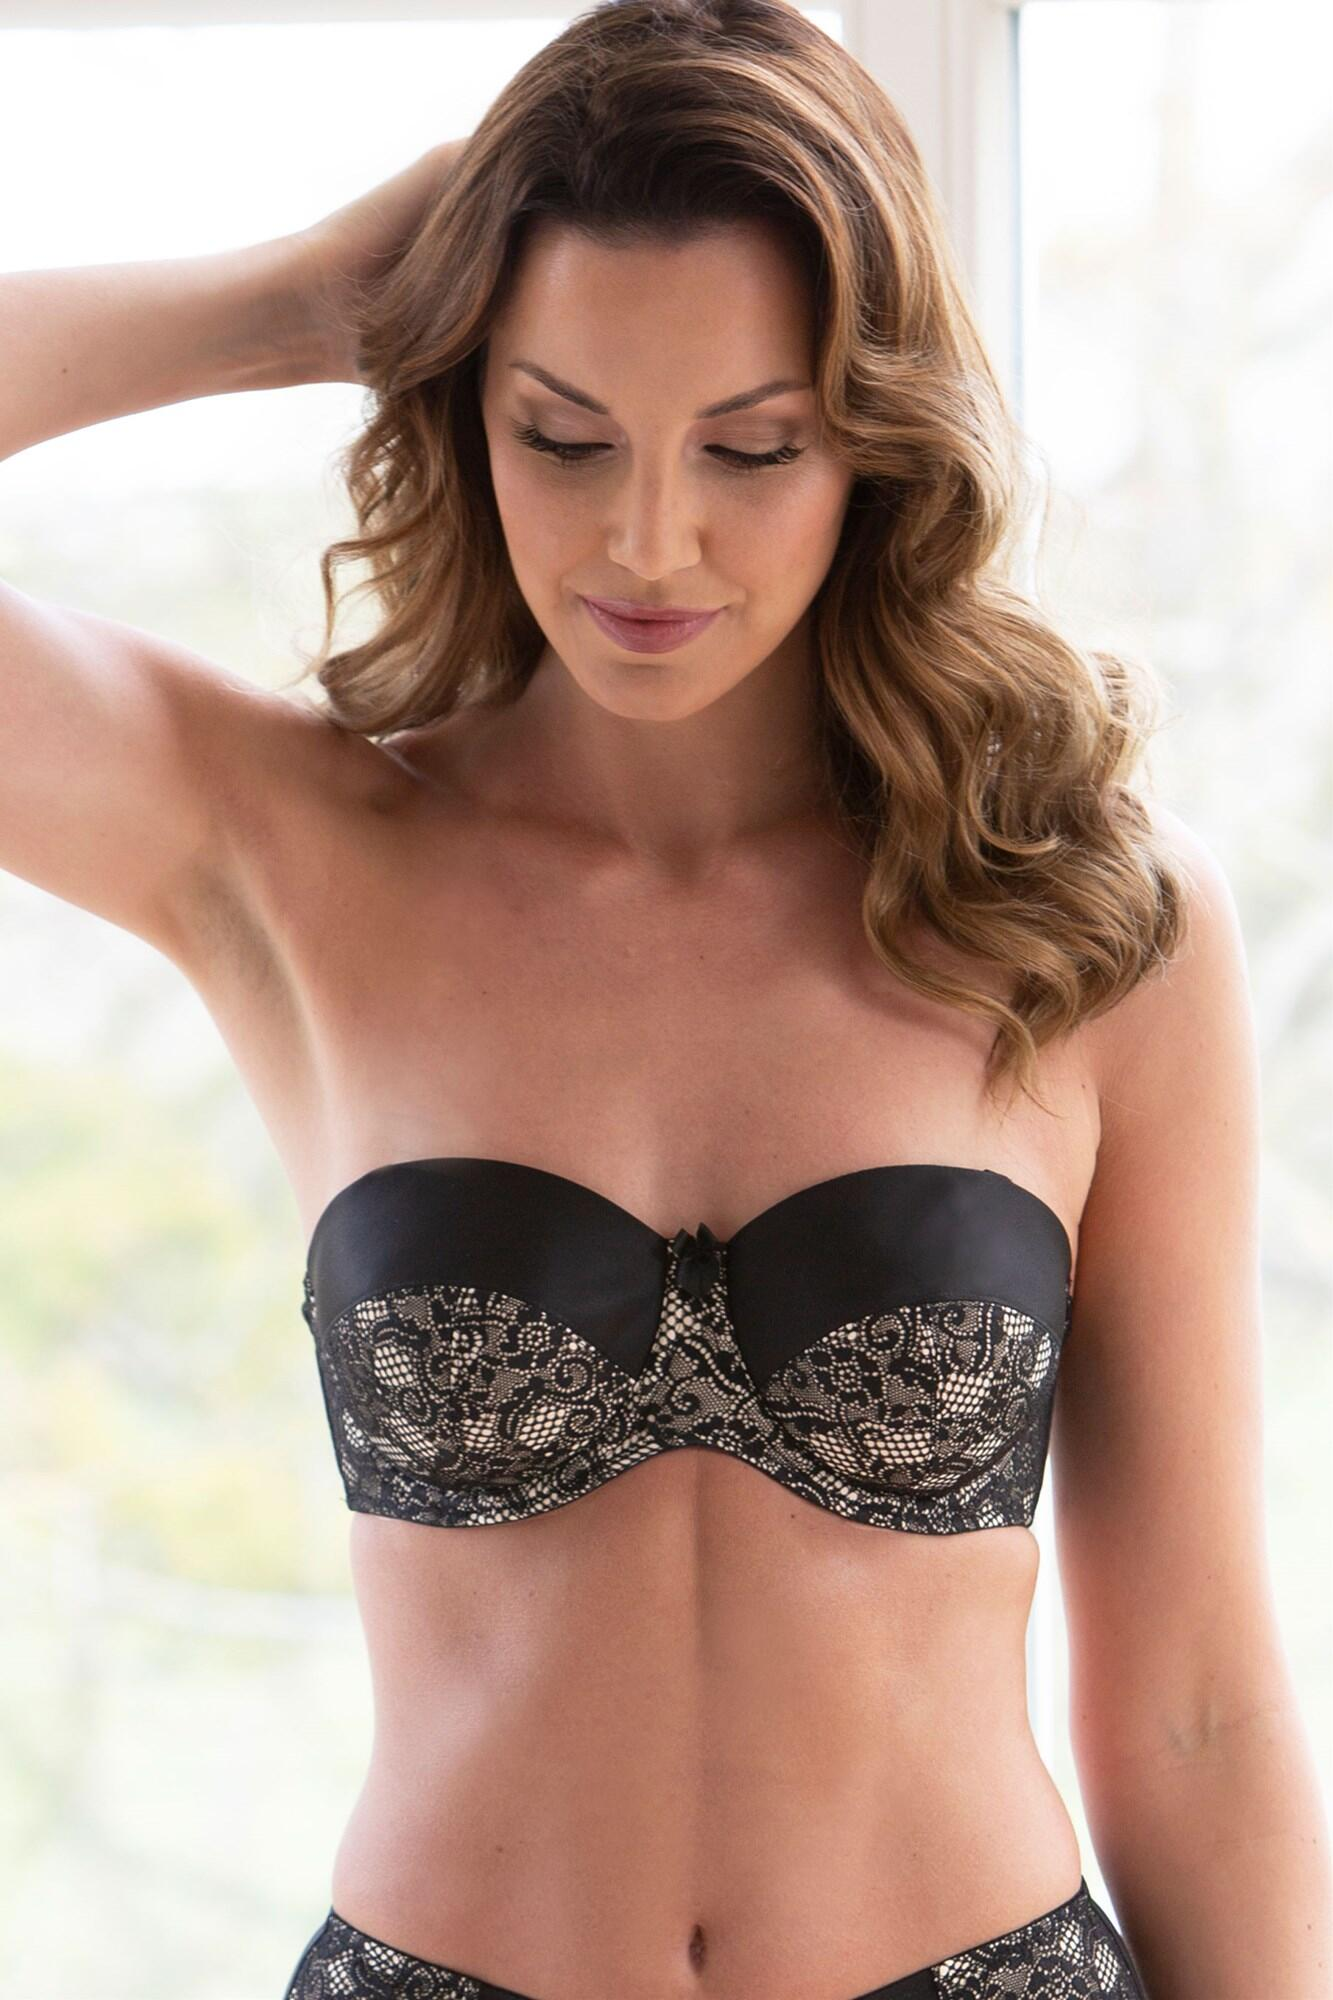 Superfit Lace Strapless Bra - Black/Nude